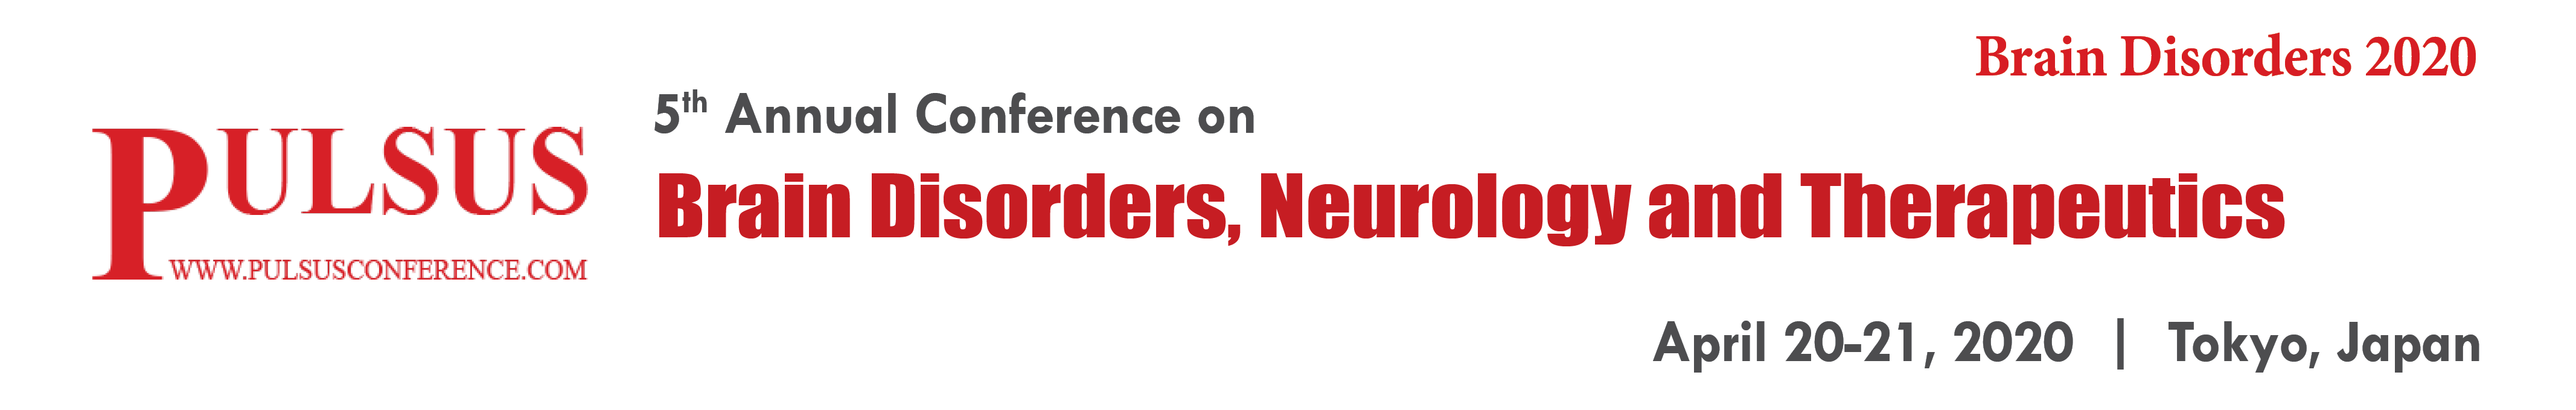 Brain Disorders Conference | Neurology Conference